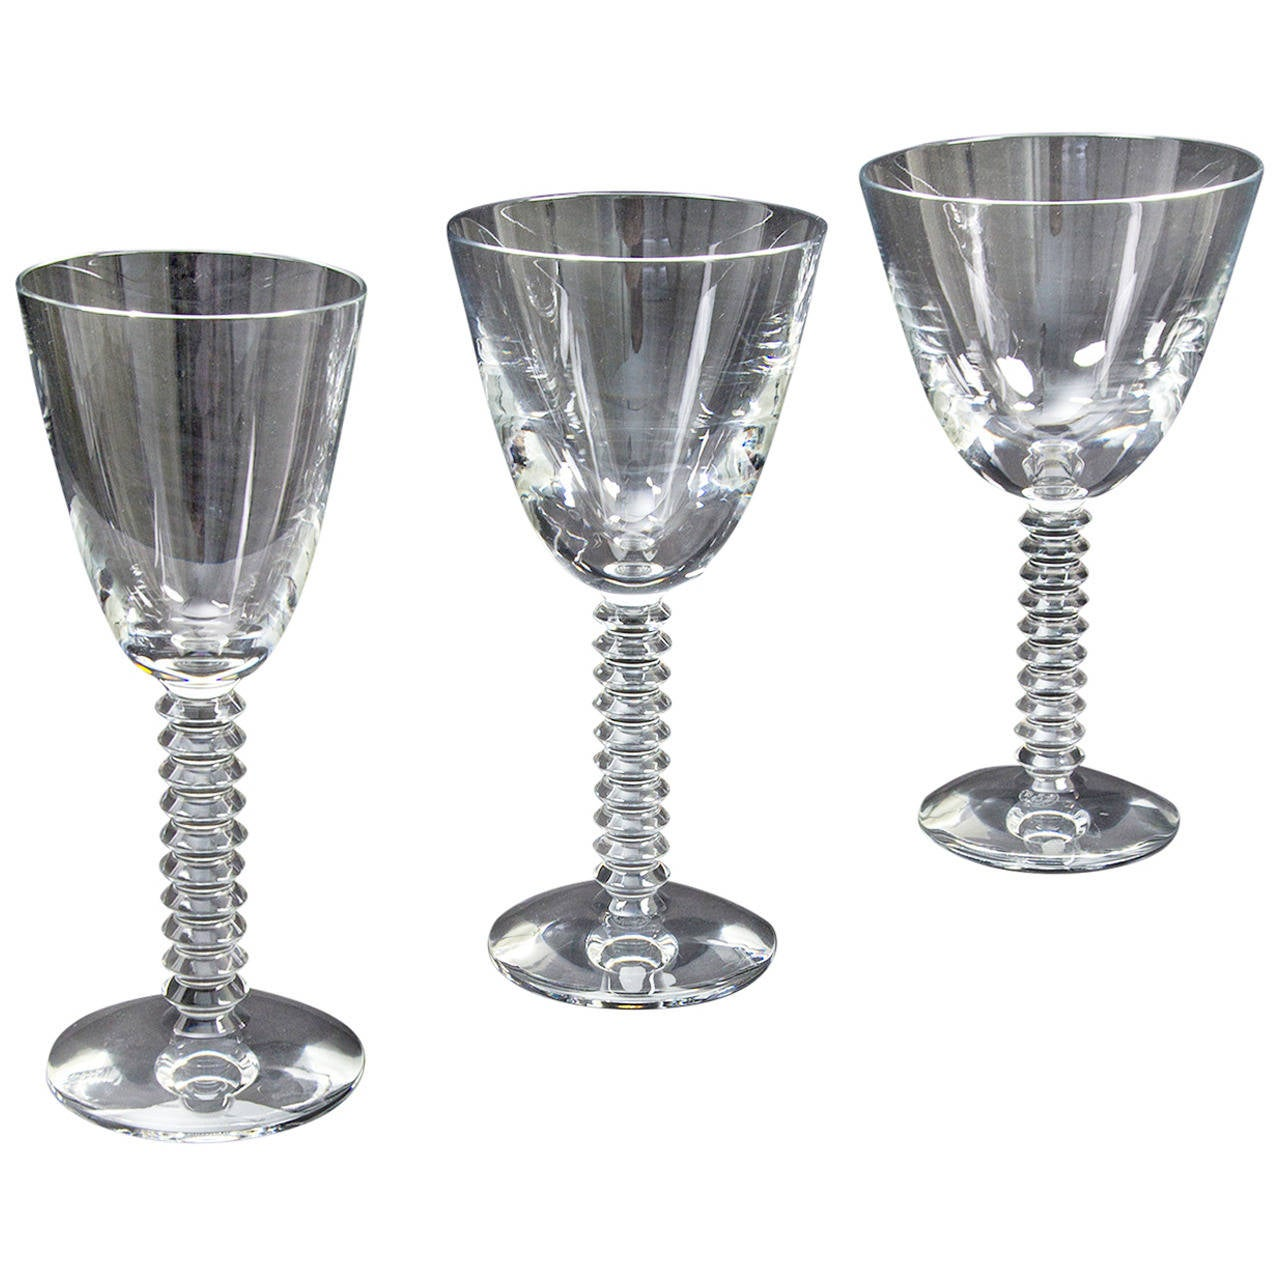 36 baccarat crystal glasses in lalande pattern at 1stdibs